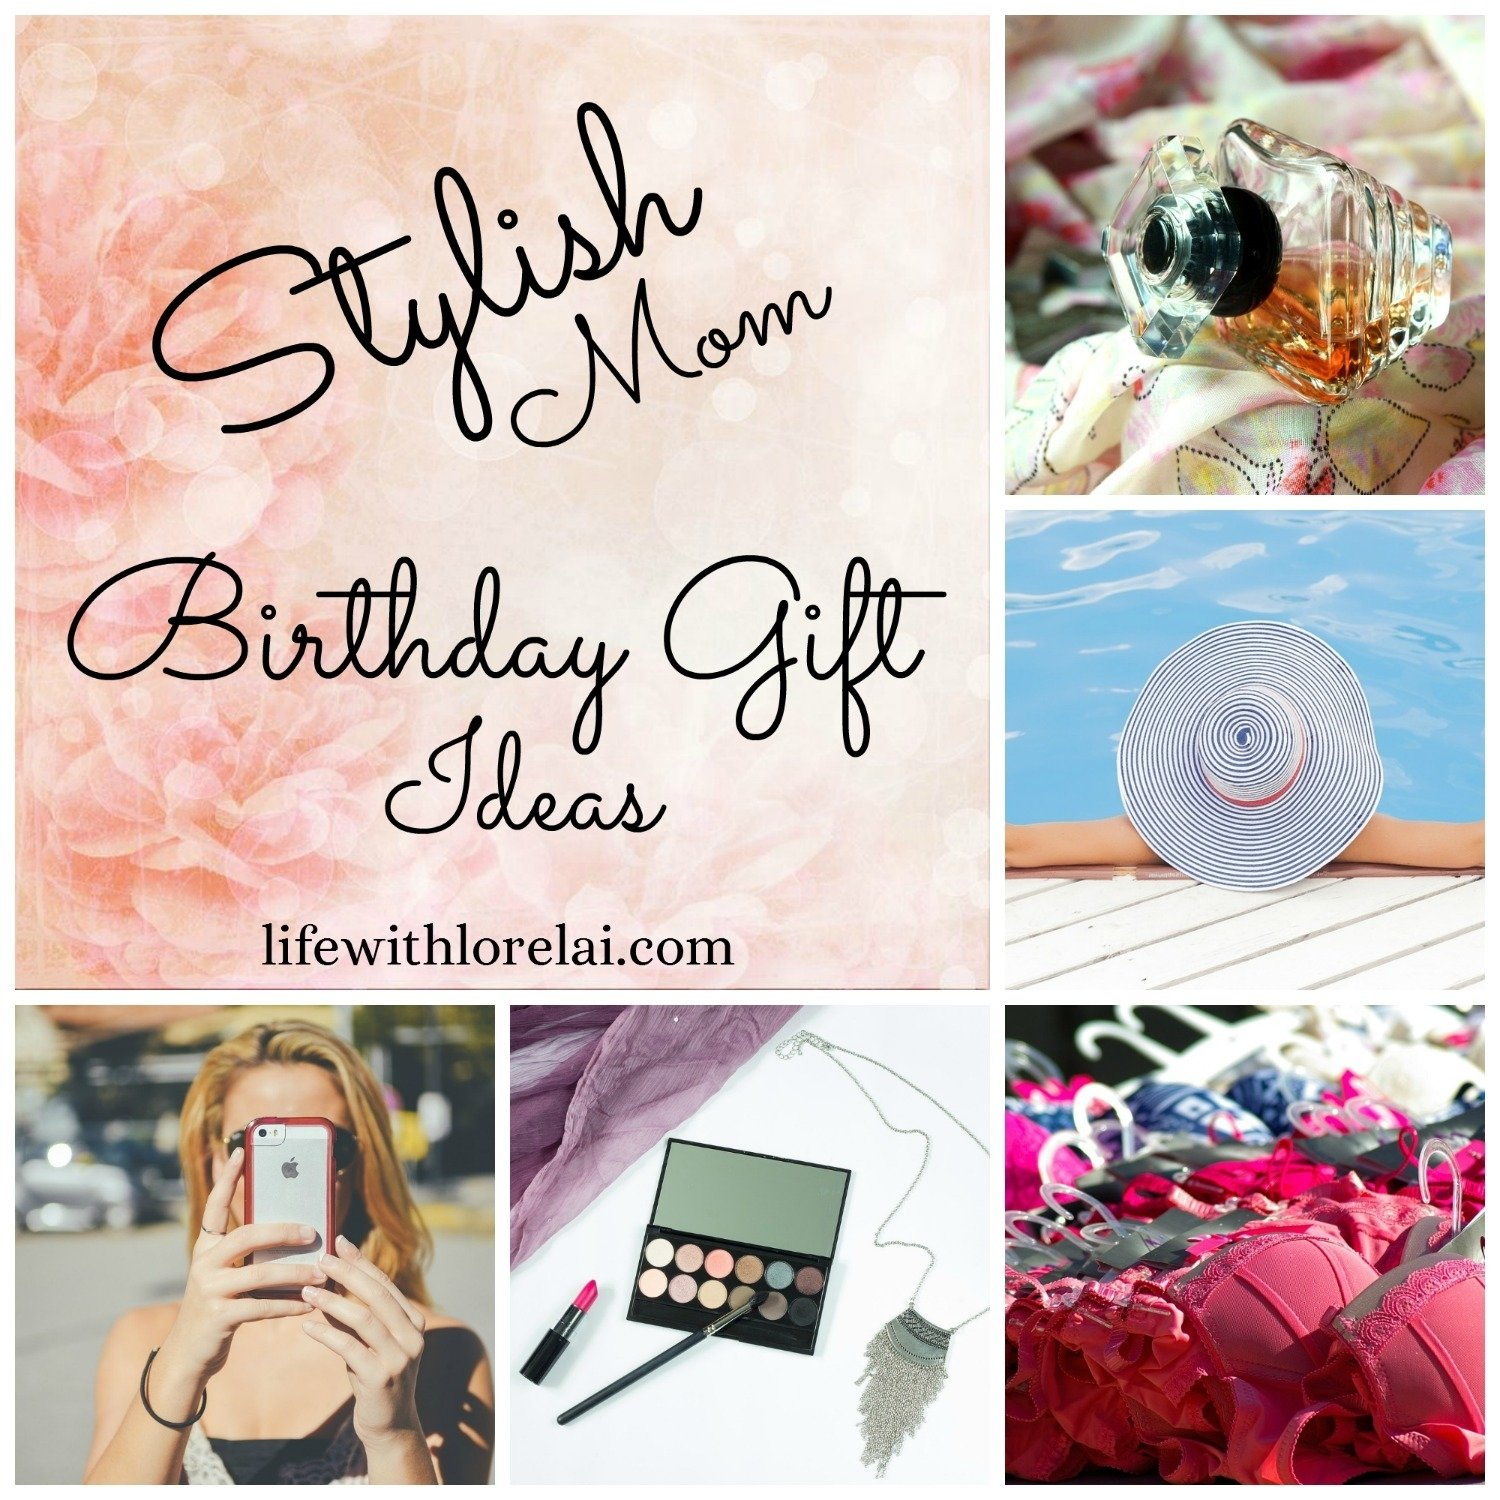 10 Stylish Gift Ideas For A Mom birthday gift ideas for the stylish mom life with lorelai 6